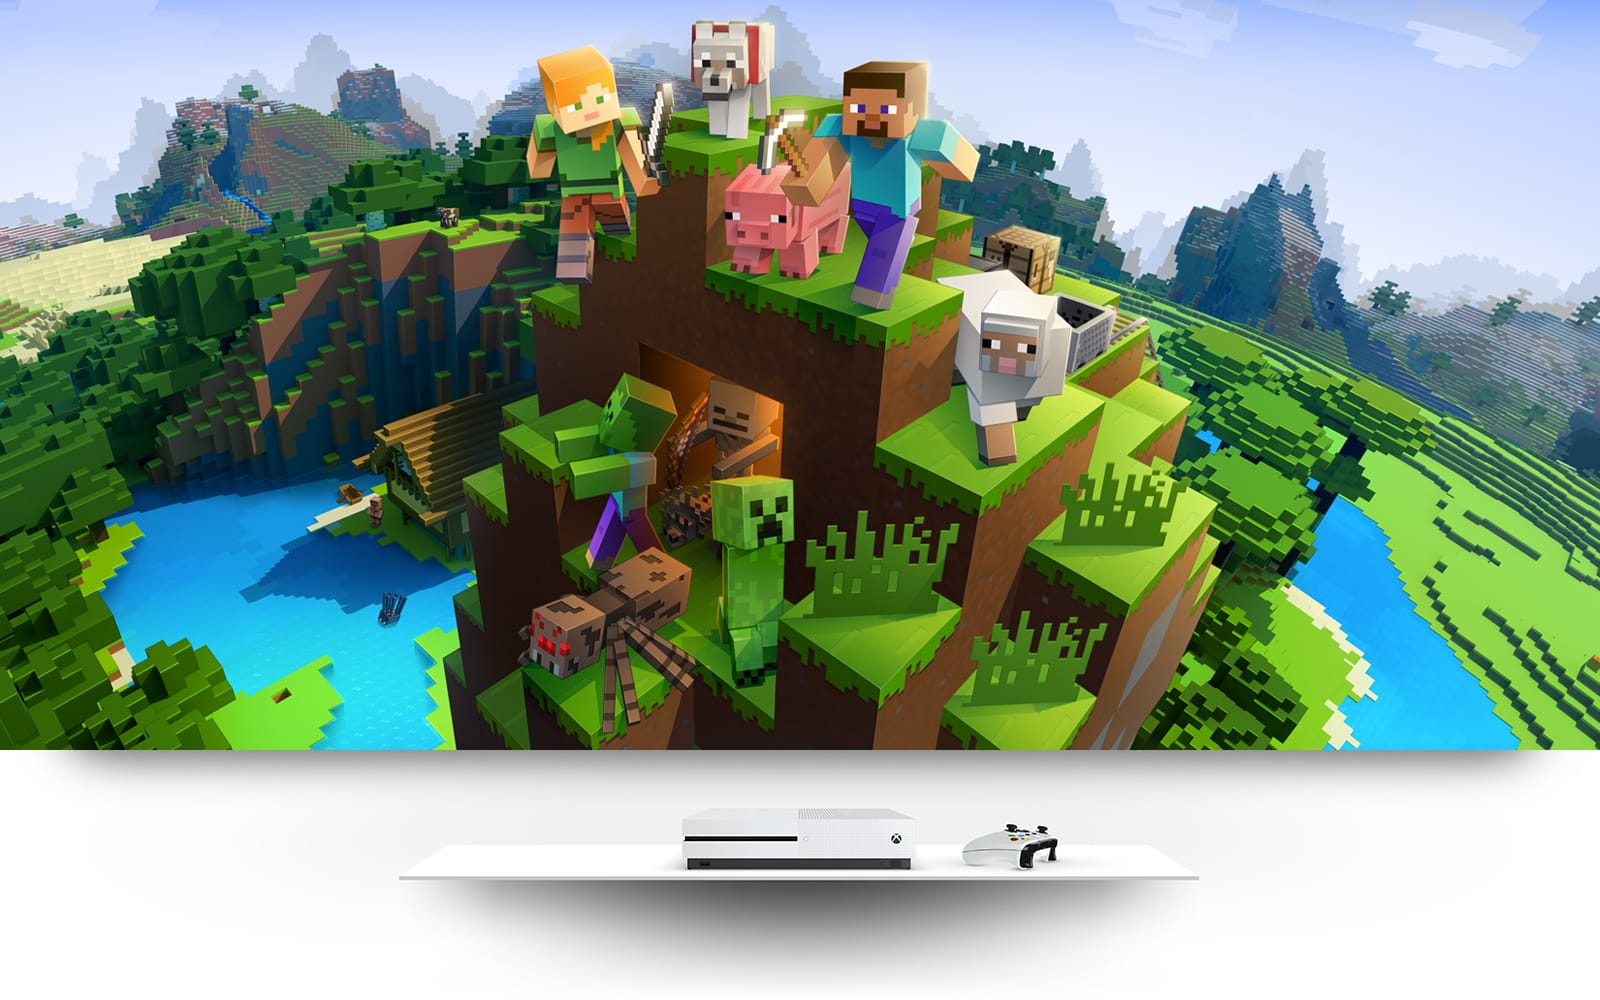 Minecraft World con jugadores y animales de Minecraft